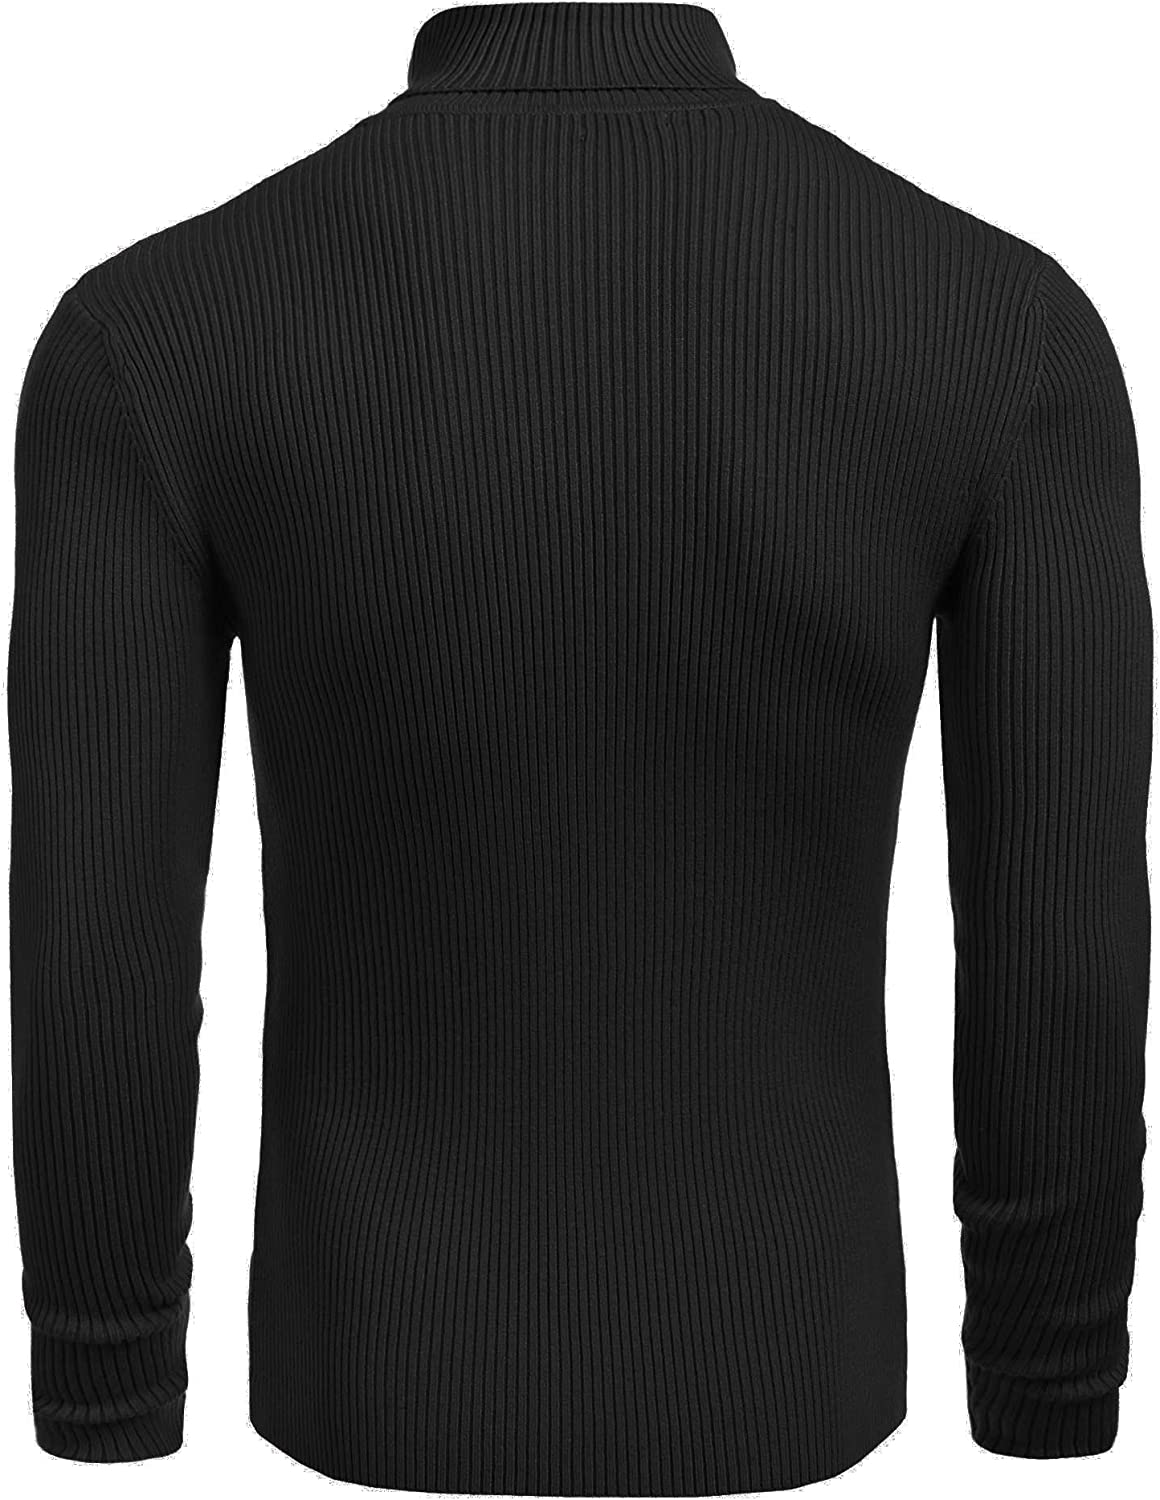 Yayu Mens Solid Color High Neck Long Sleeve Knit Sweater Top